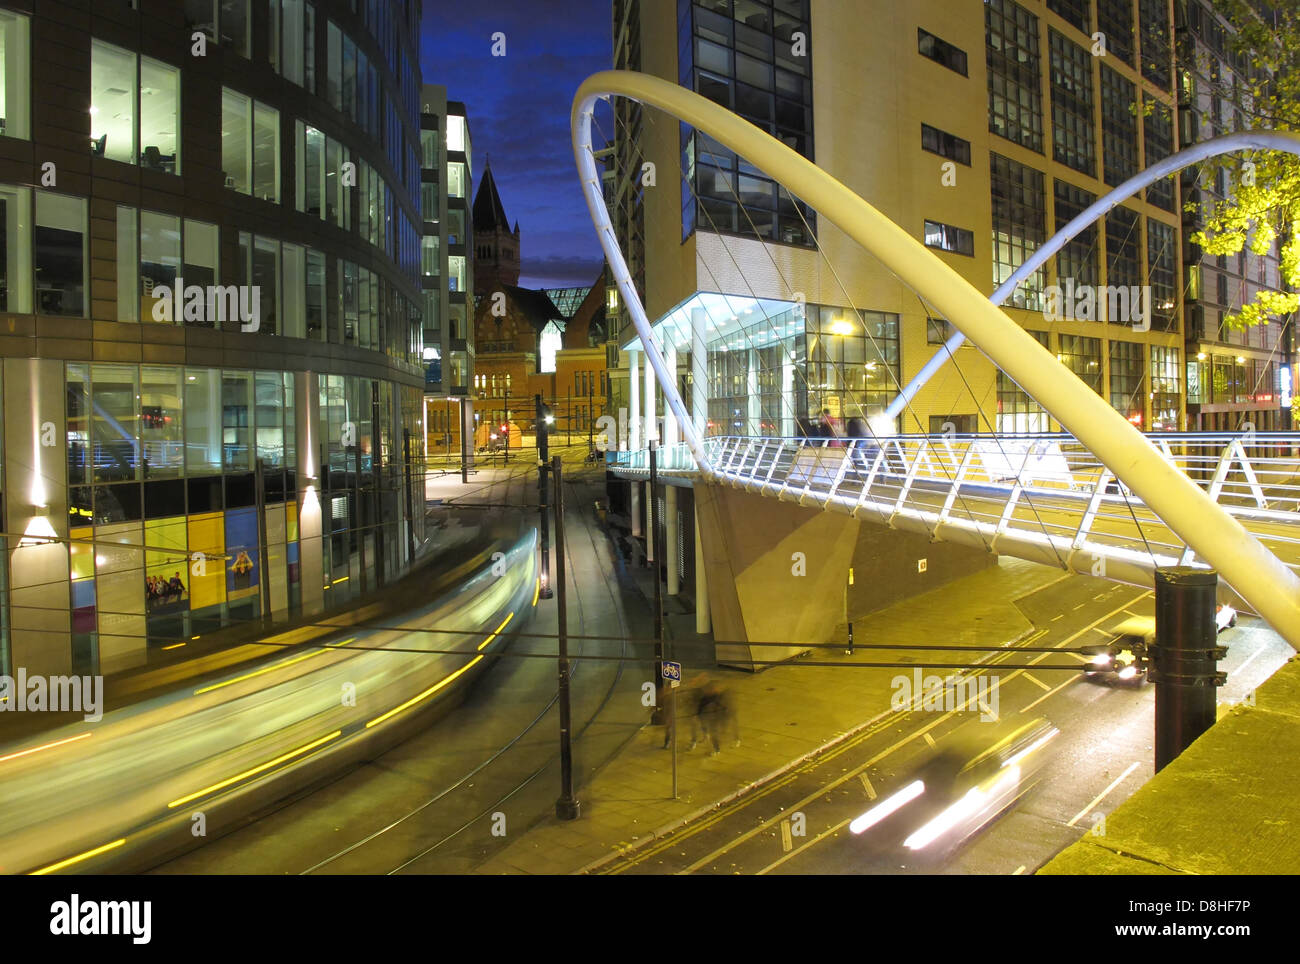 Night,mainline,railroad,railway,Station,Manchester,England,UK,BR,cars,car,trials,city,centre,mixed,lighting,tourist,shot,photo,image,linking,canal,st,travel,to,white,steel,tubular,construction,hidden,surprising,Gotonysmith,gotonysmith,Buy Pictures of,Buy Images Of